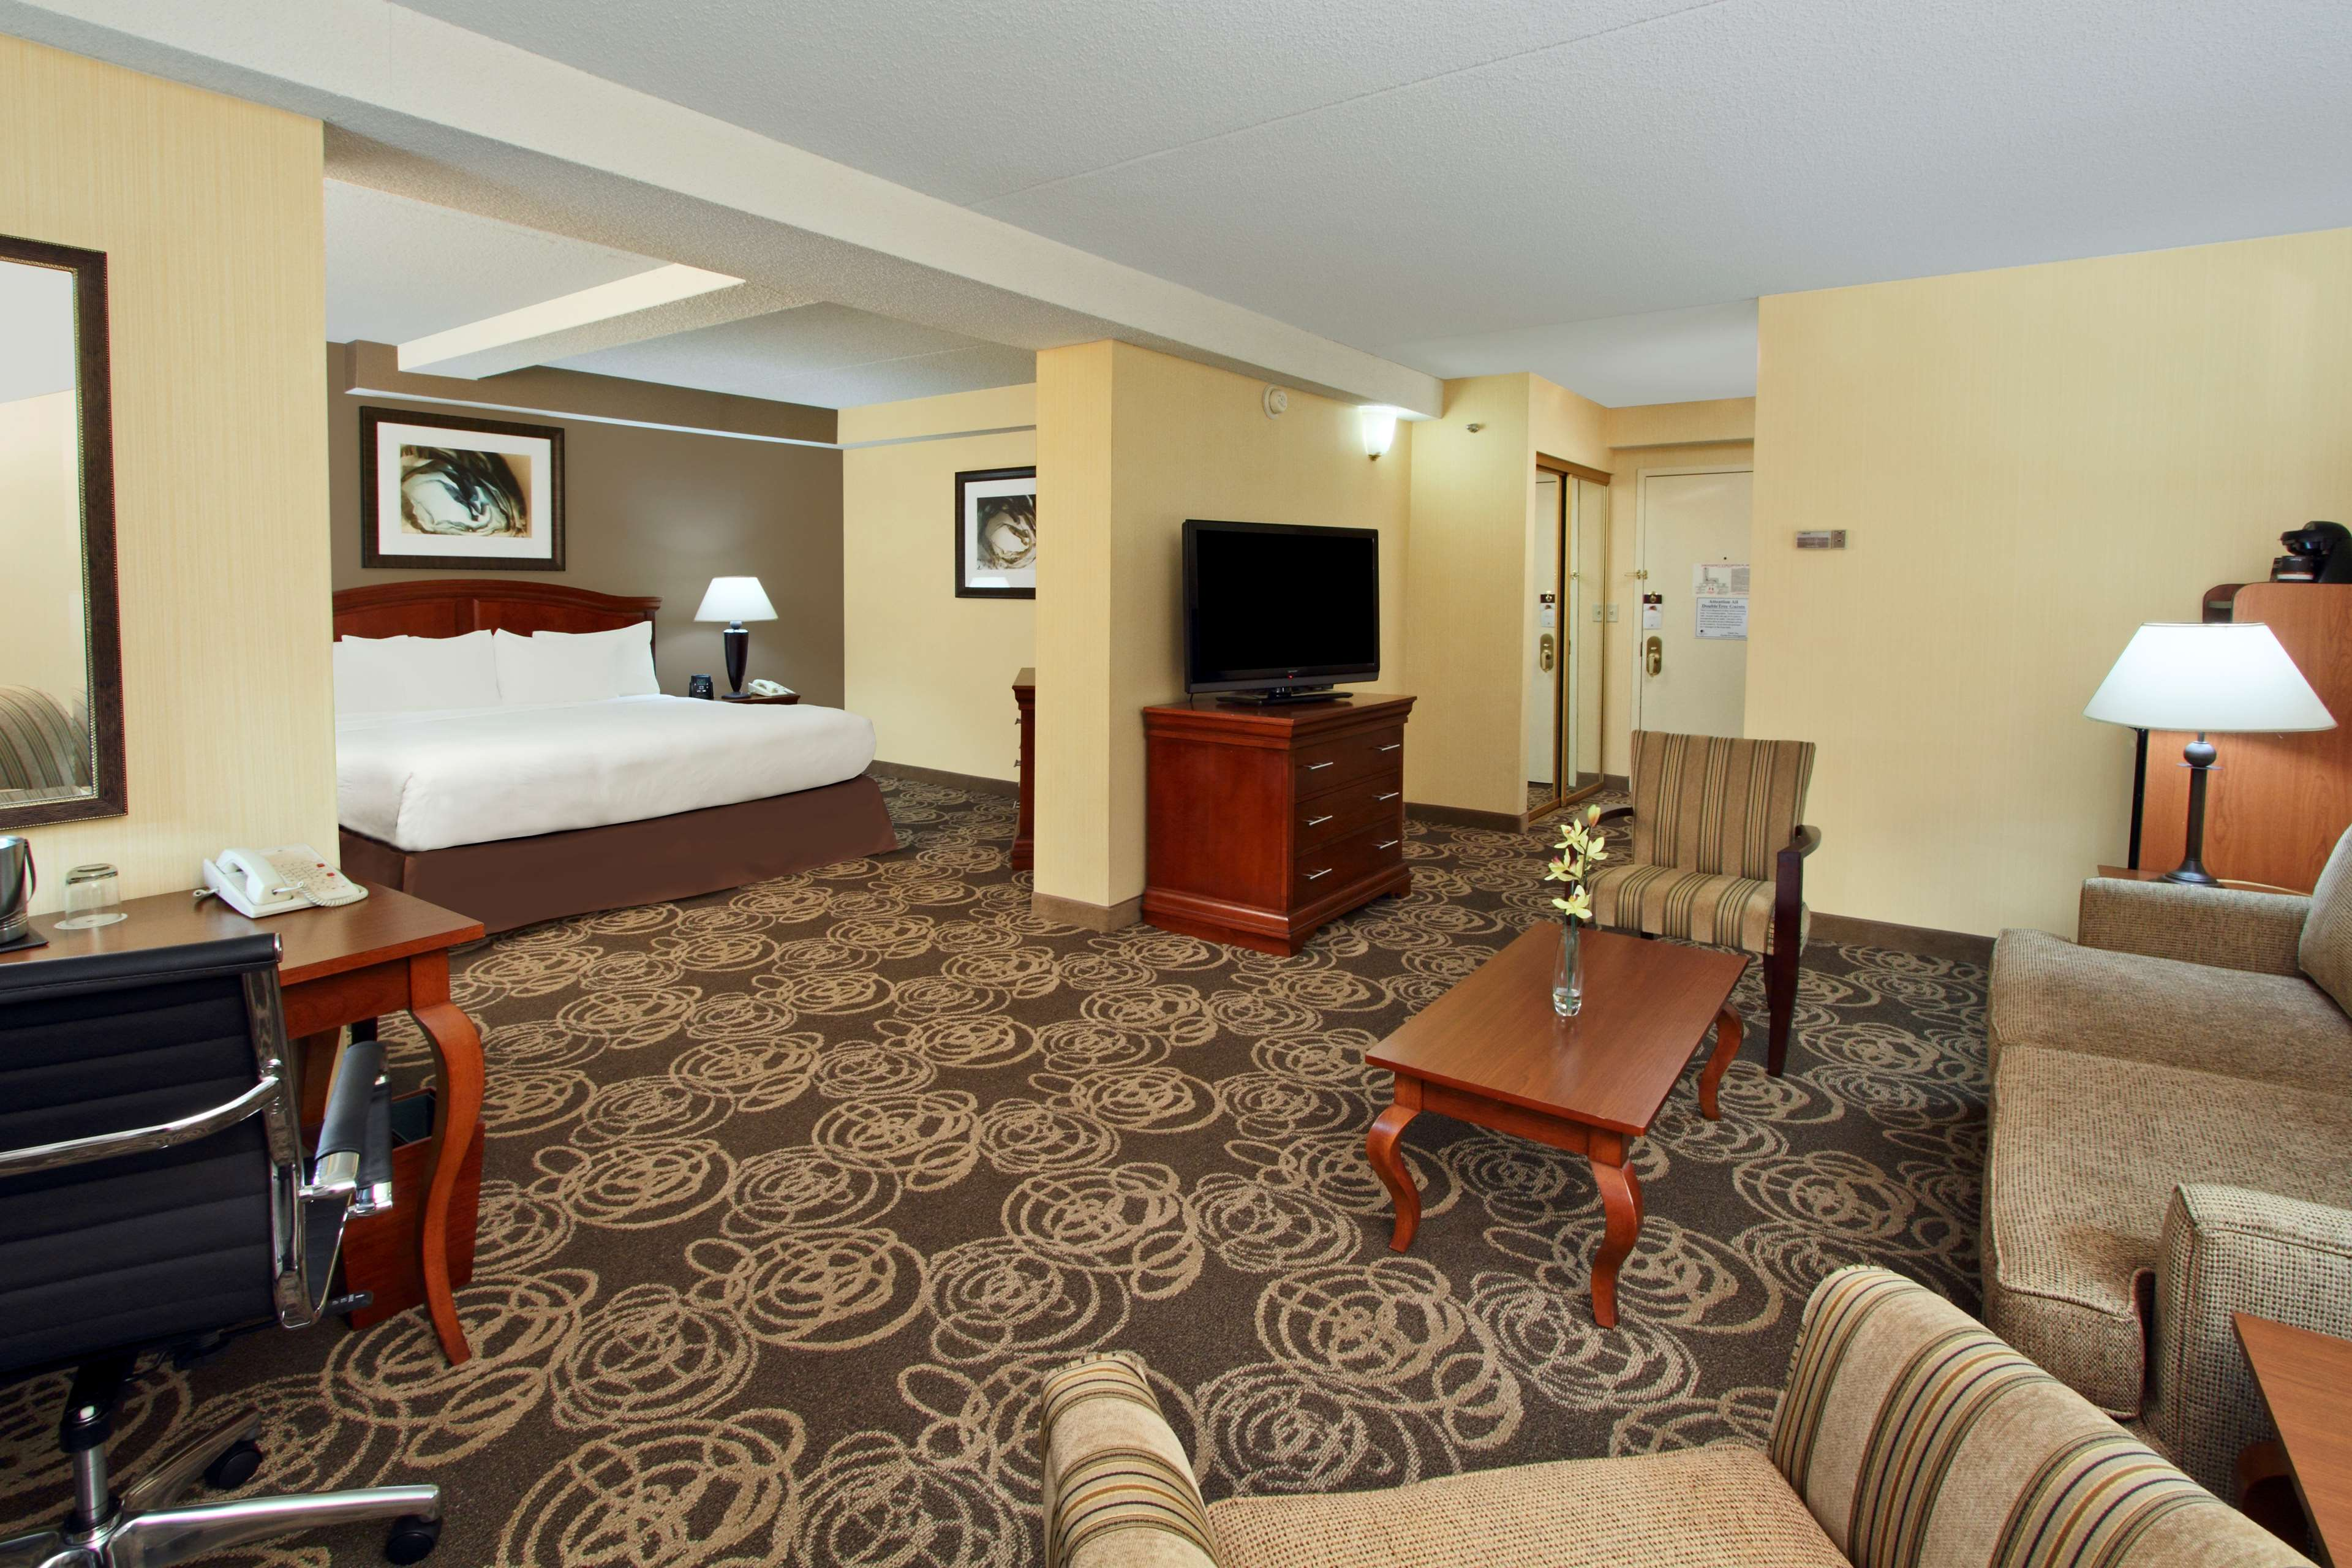 DoubleTree by Hilton Hotel Mahwah image 16